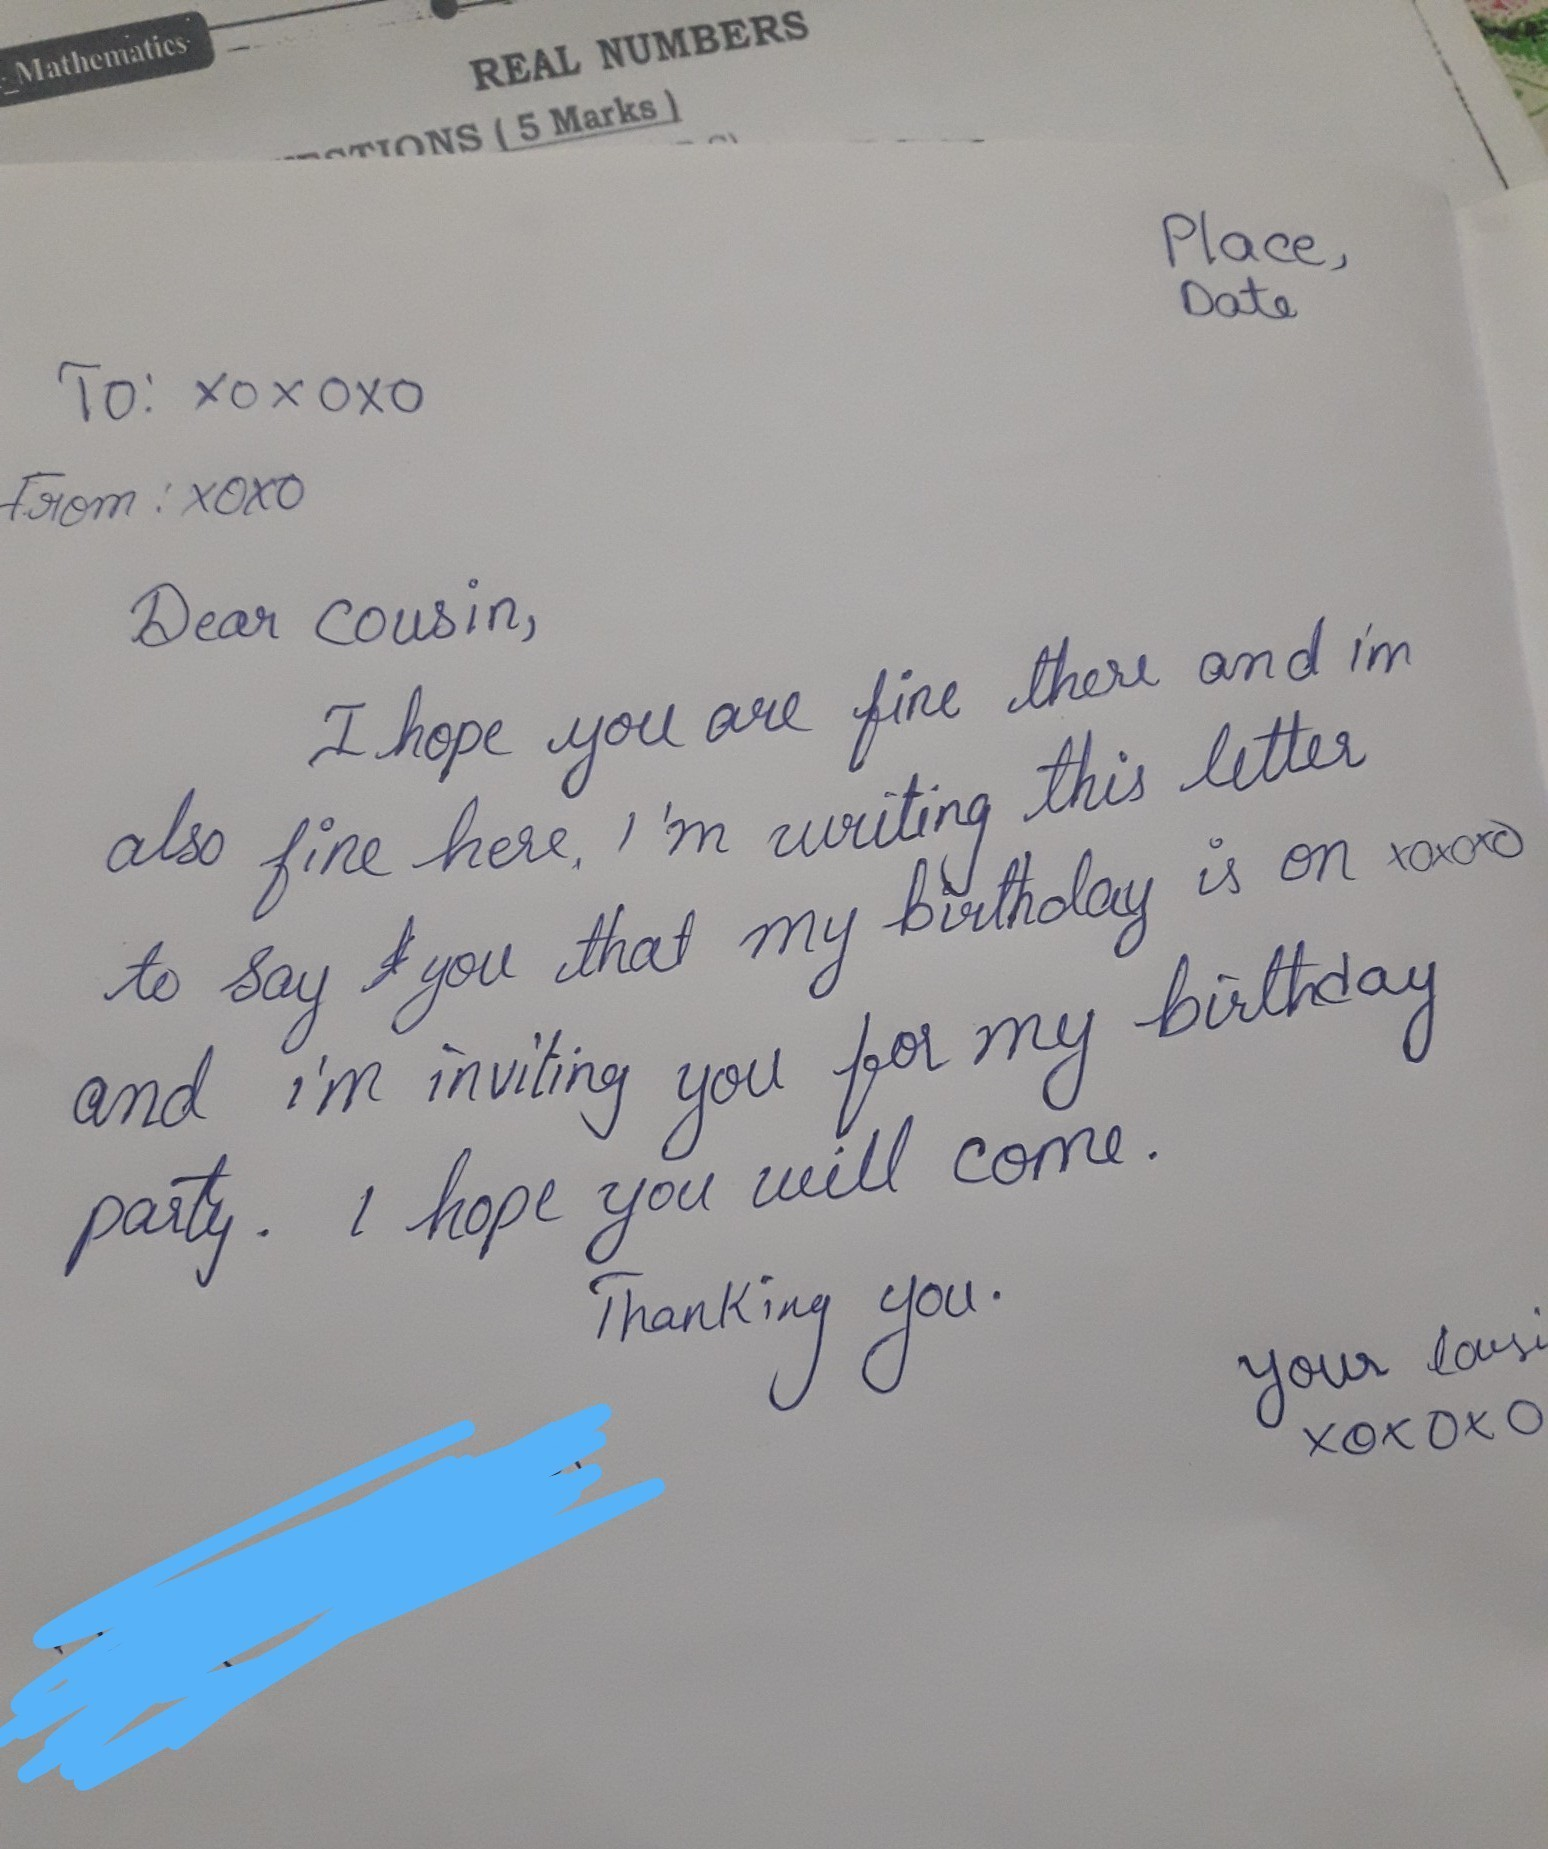 letter to cousin